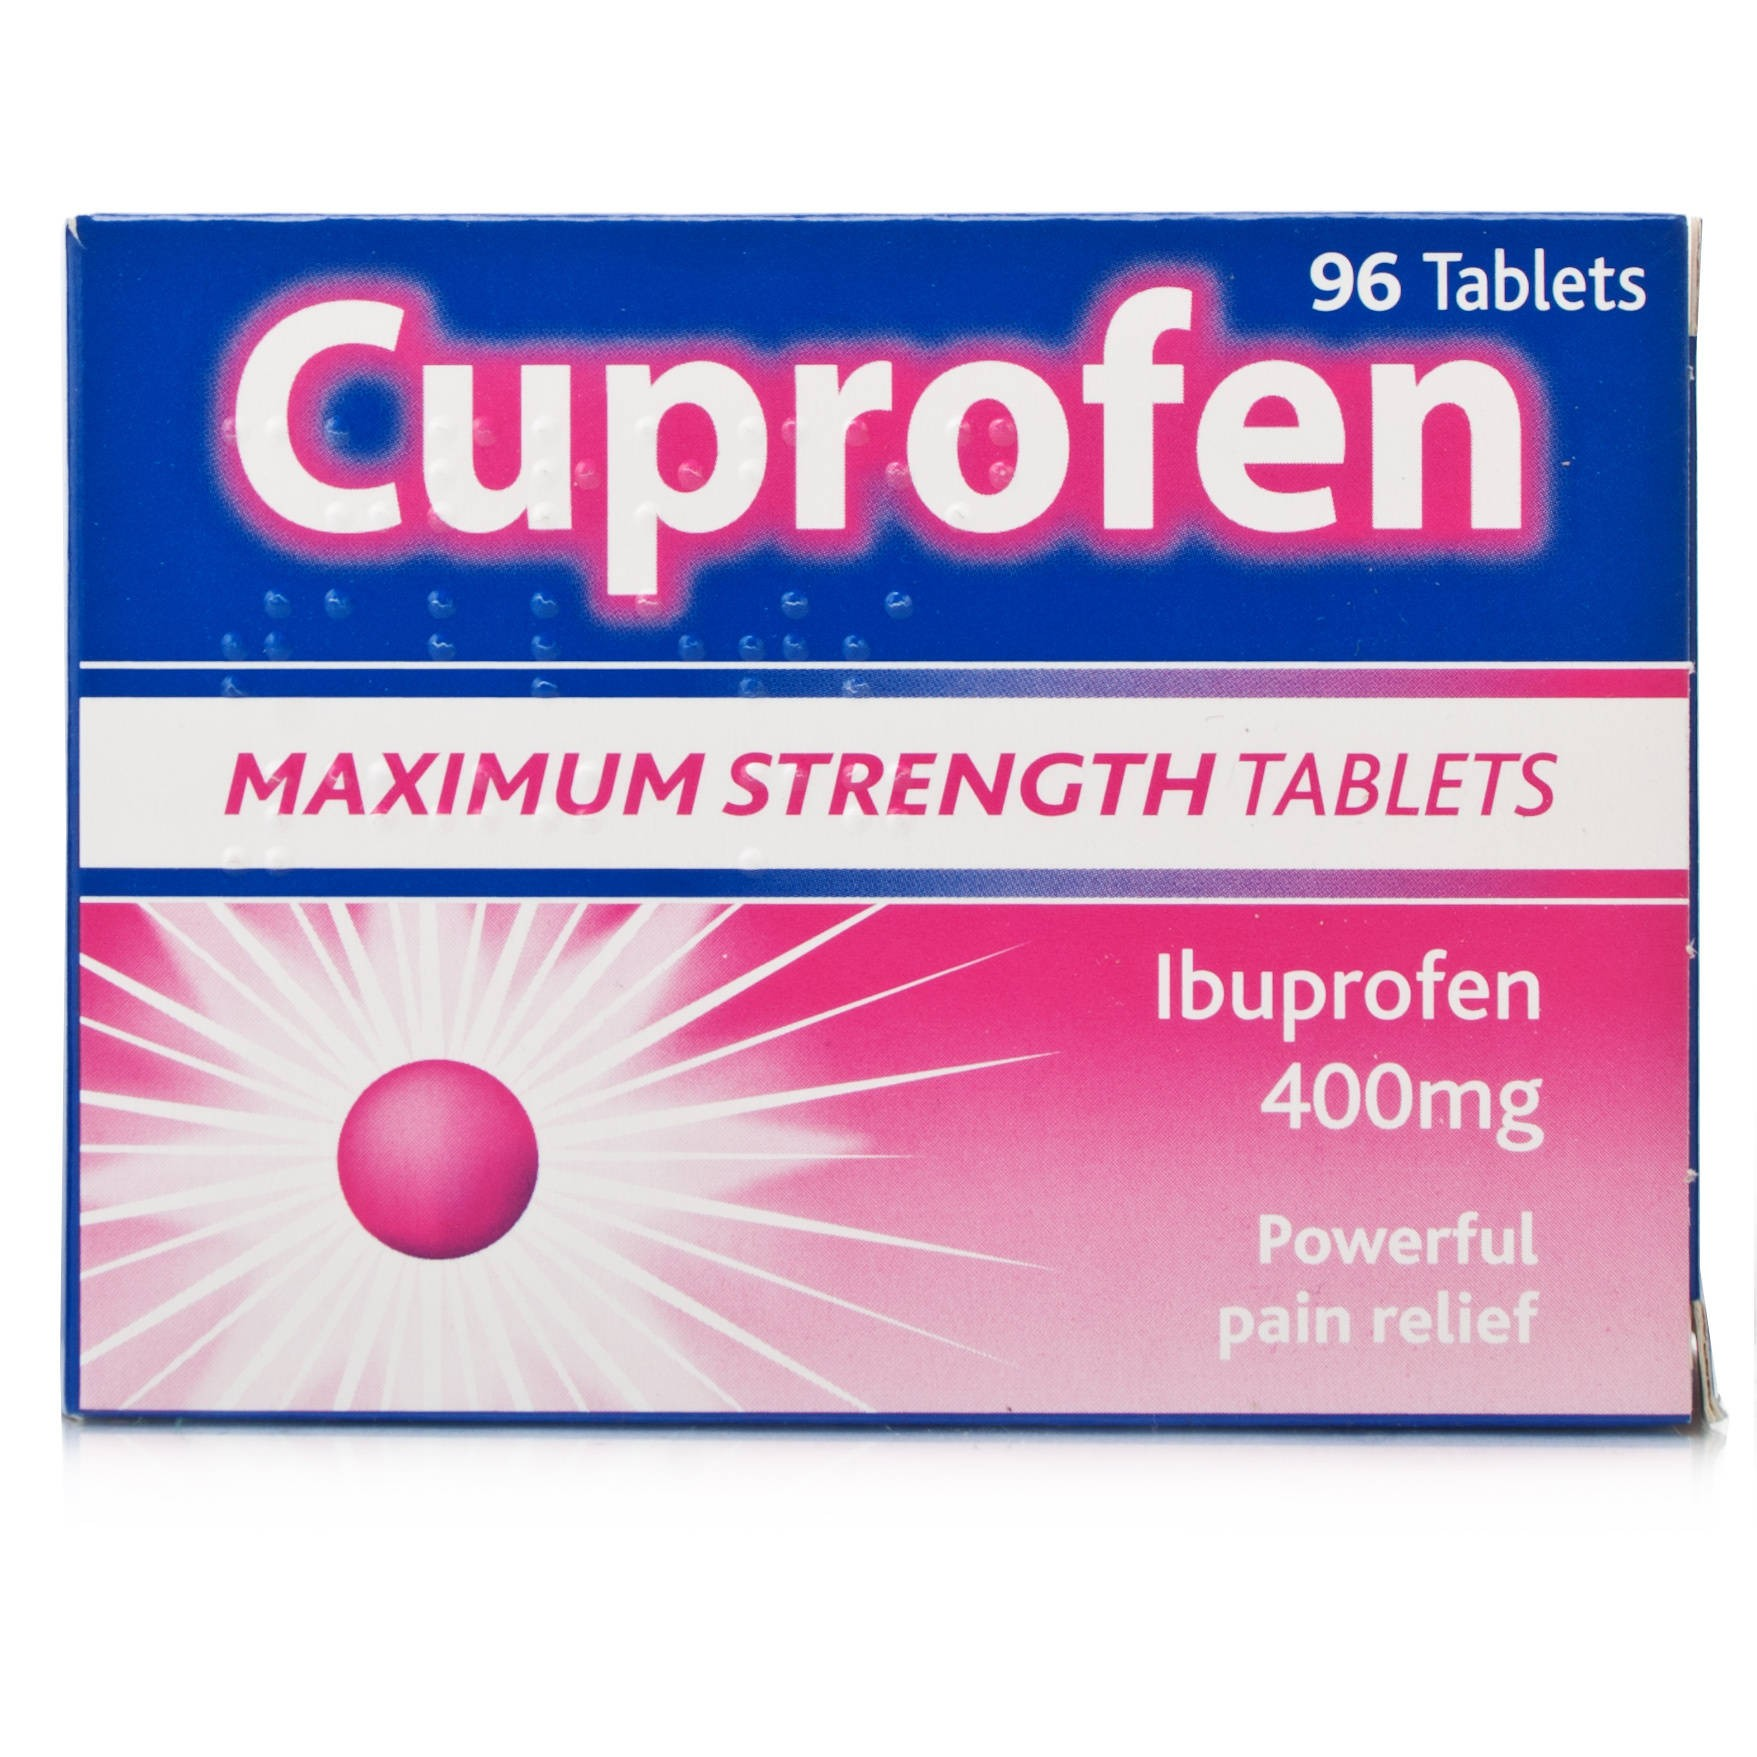 Cuprofen Maximum Strength Tabs